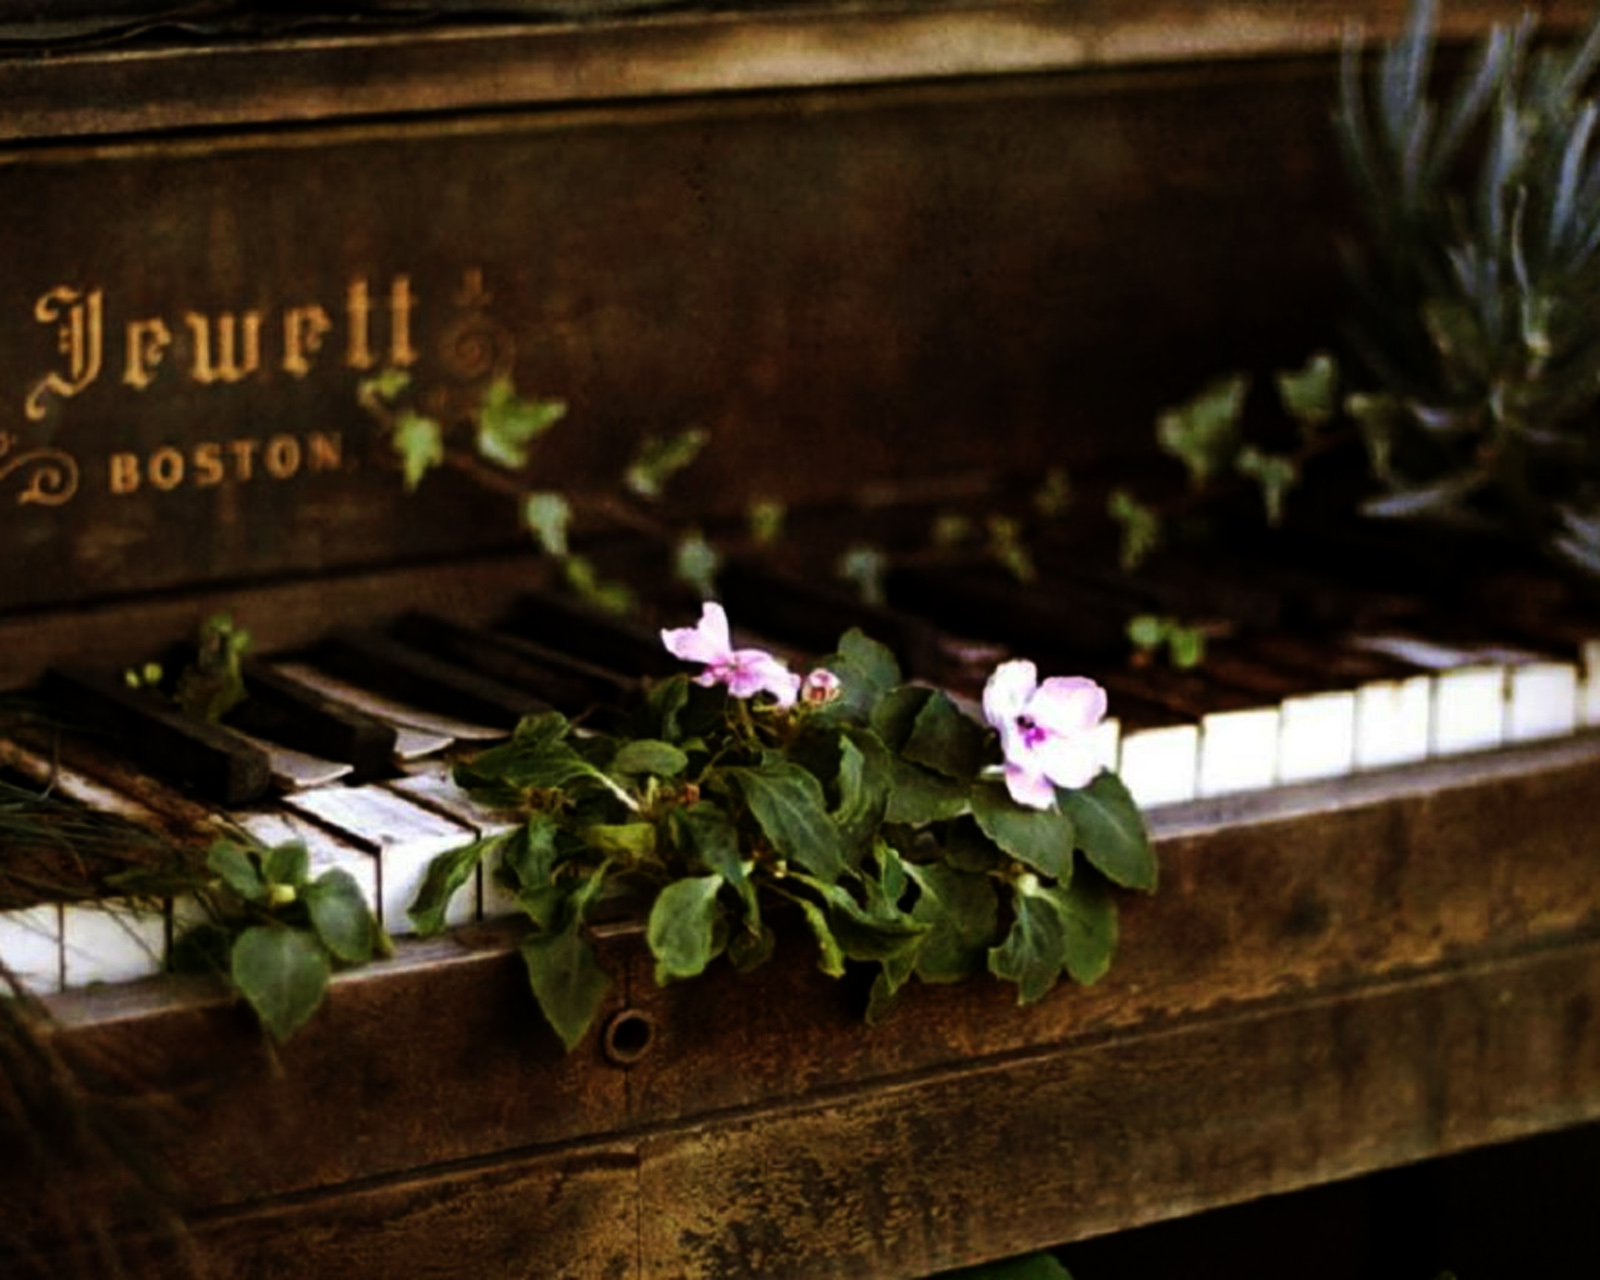 http://4.bp.blogspot.com/-PMtb0tFFrhc/UGhDTTgH1II/AAAAAAAAE8M/F546SwB1FB4/s1600/Jewett-Vintage-Piano-Flowers-on-Keyboard-HD-Wallpaper--Vvallpaper.Net.jpg